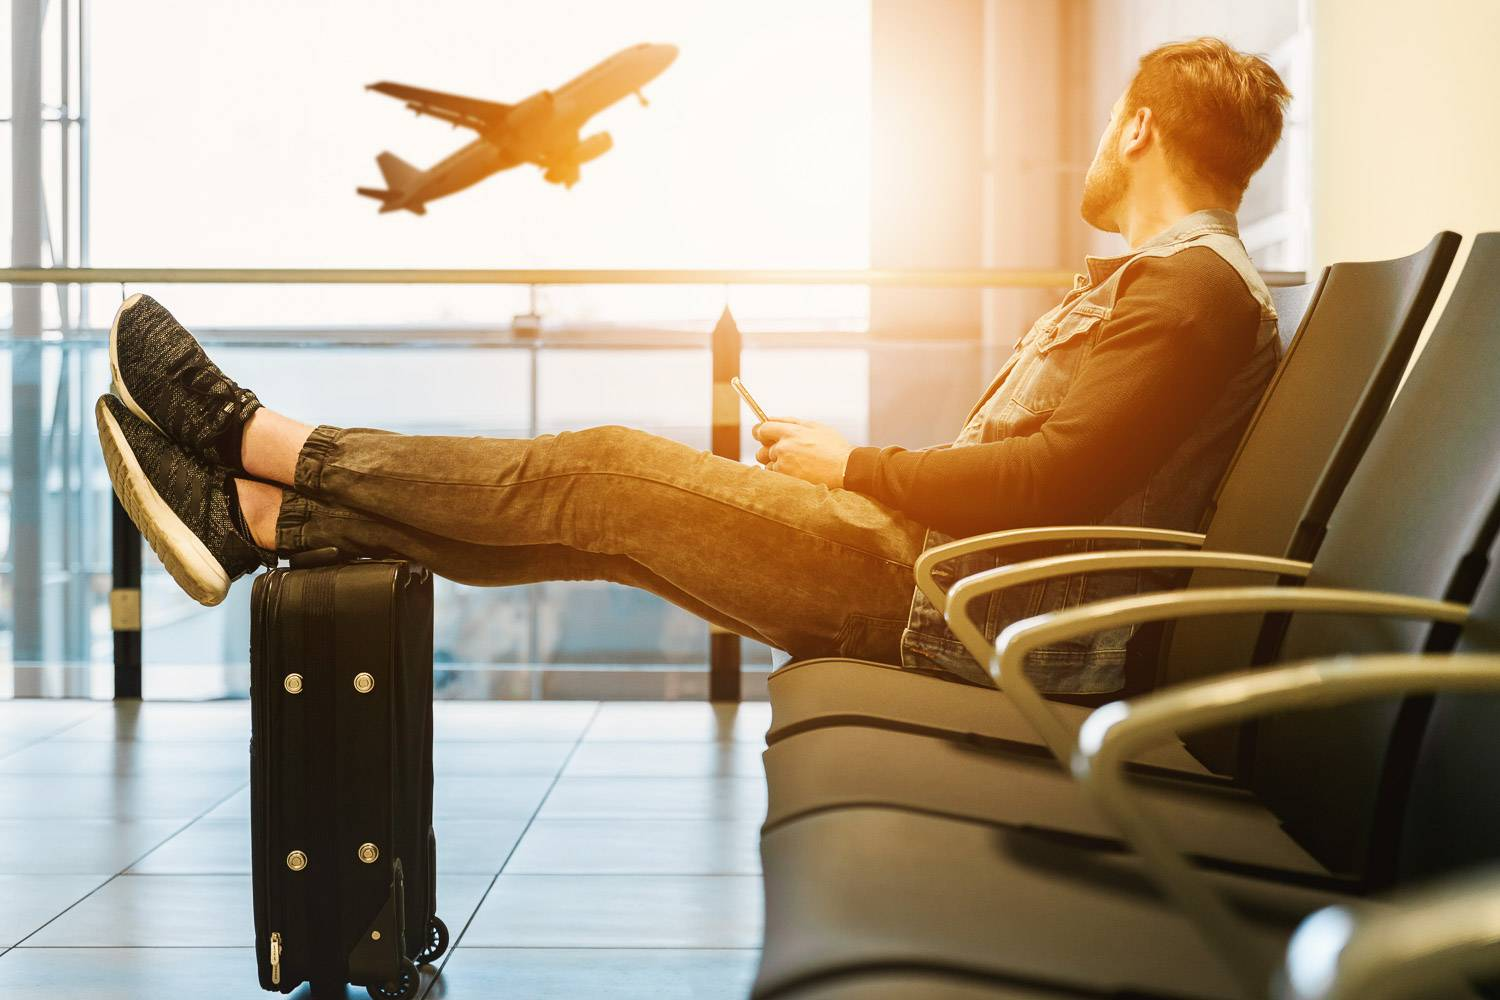 Image of male sitting in an airport with luggage and plane taking off out the window